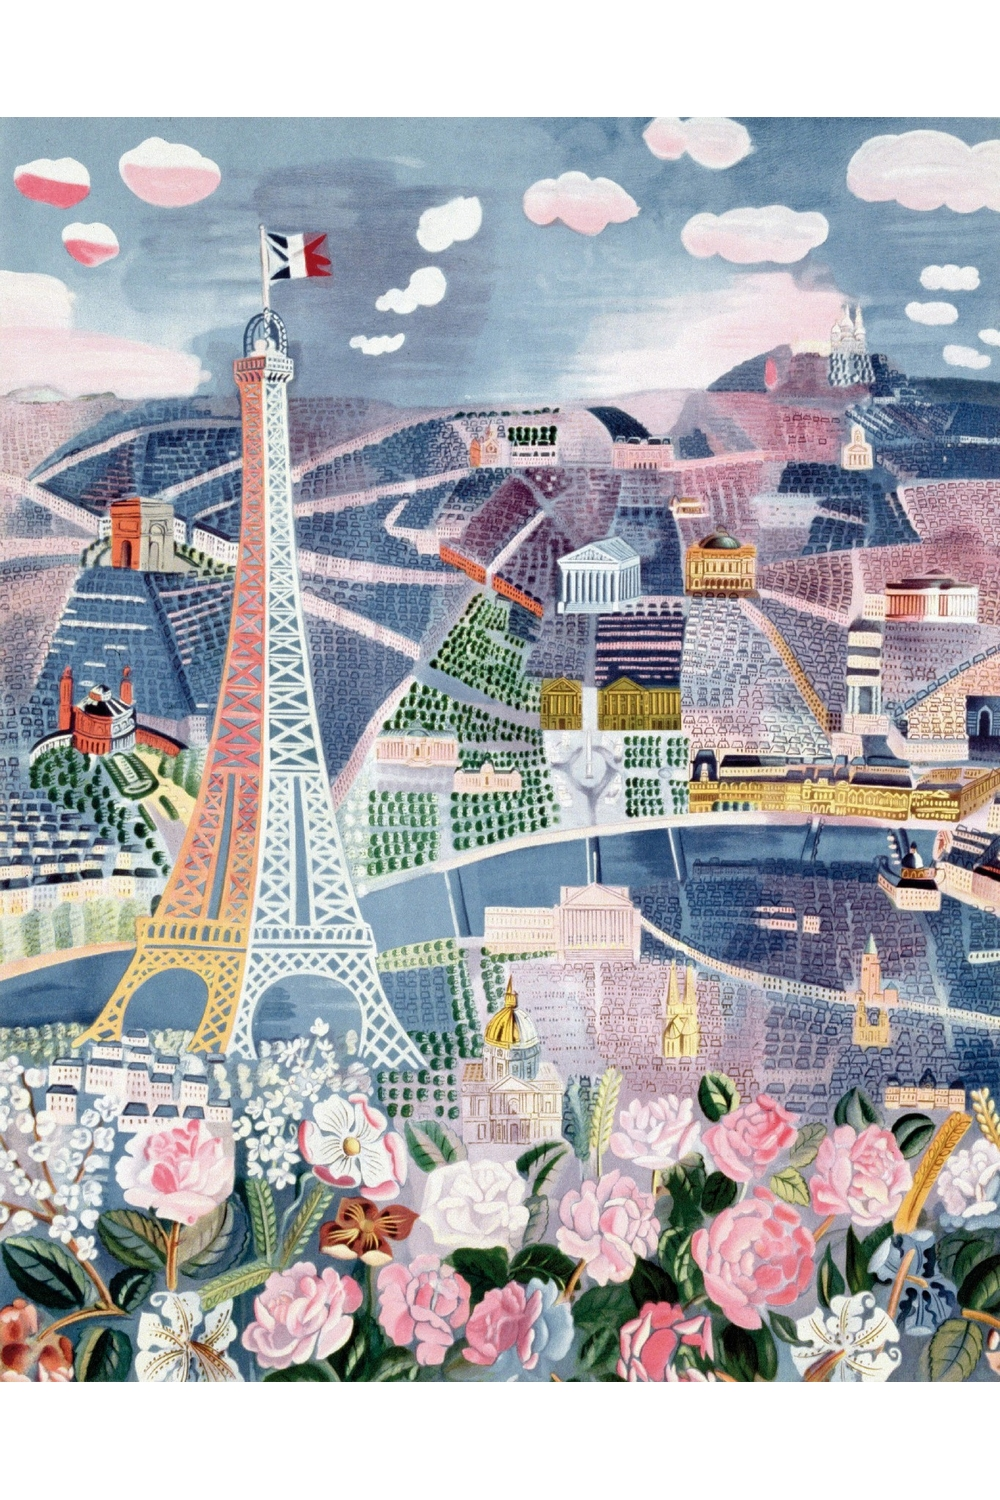 Paris au Printemps de Raoul Dufy